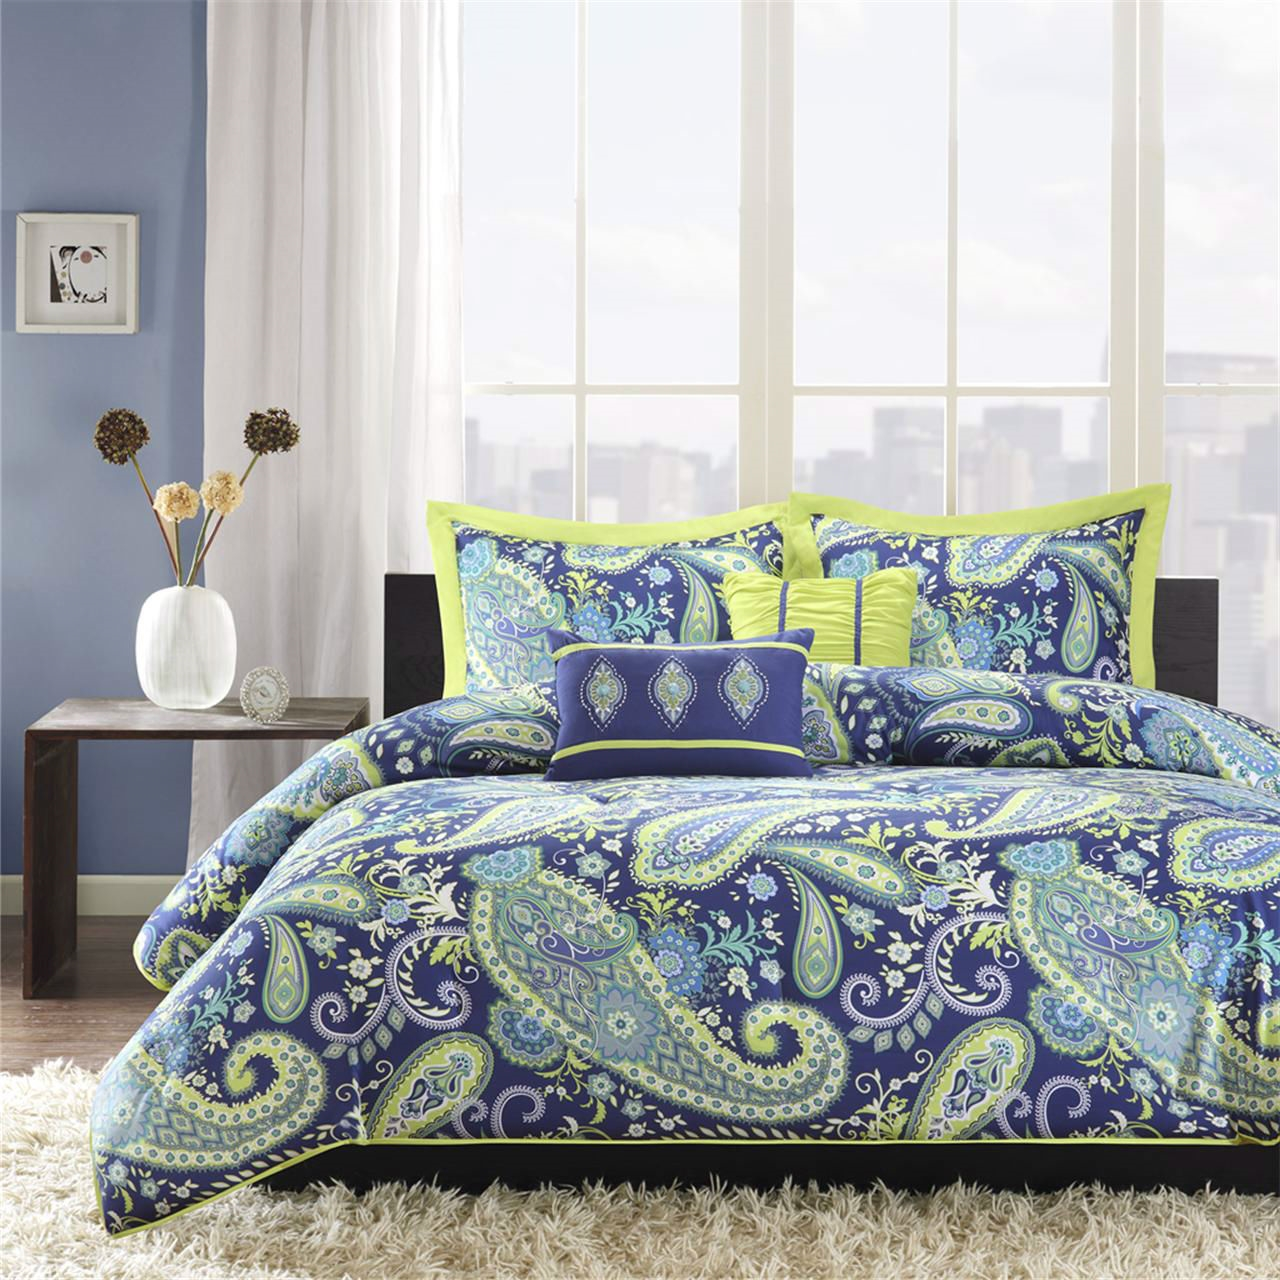 Full Queen size 5 Piece Paisley forter Set in Blue